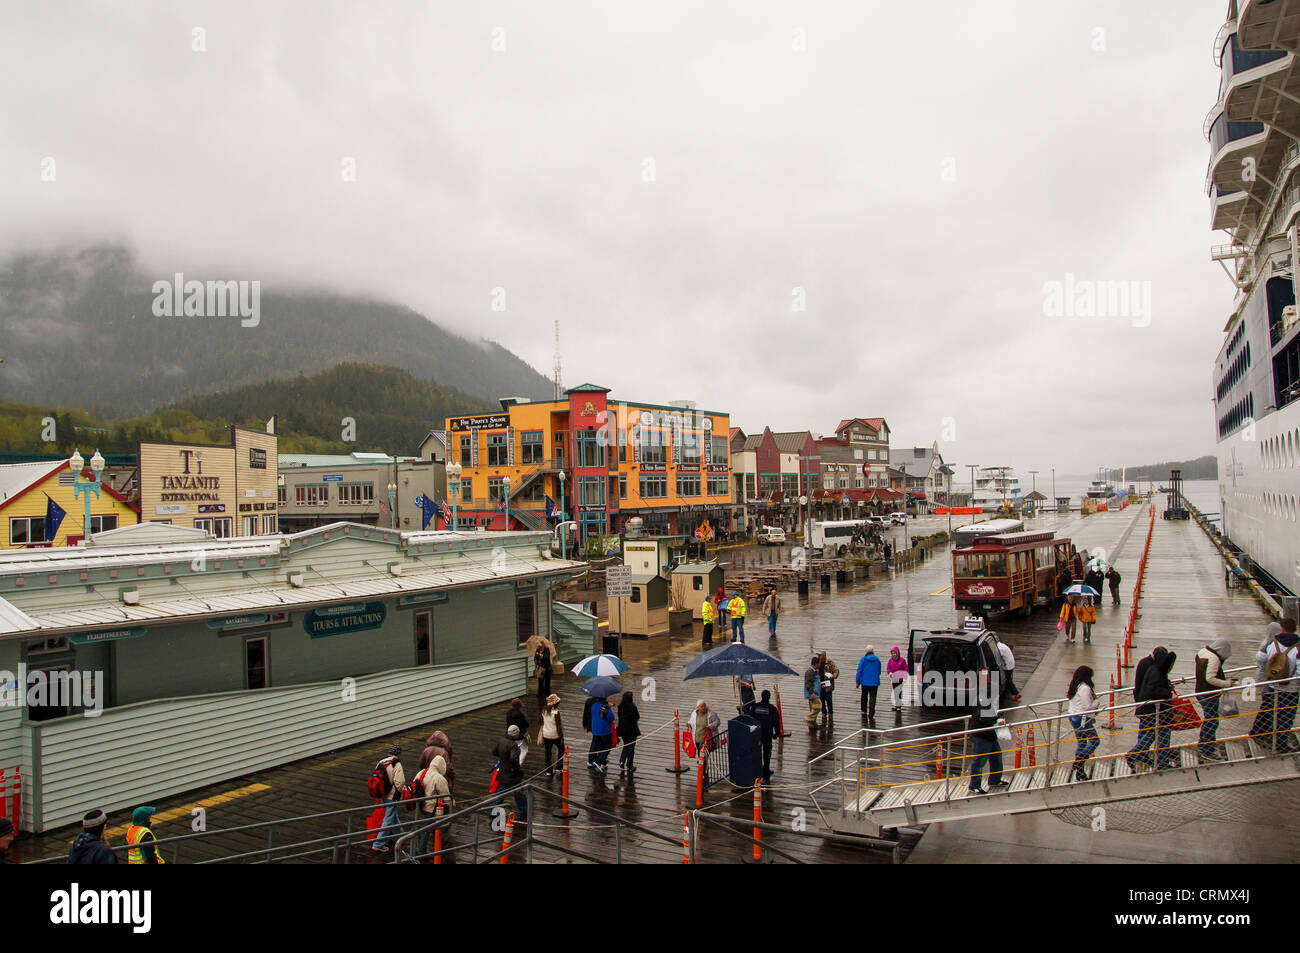 Passengers boarding a cruise ship in the rain at Ketchikan, Alaska Stock Photo